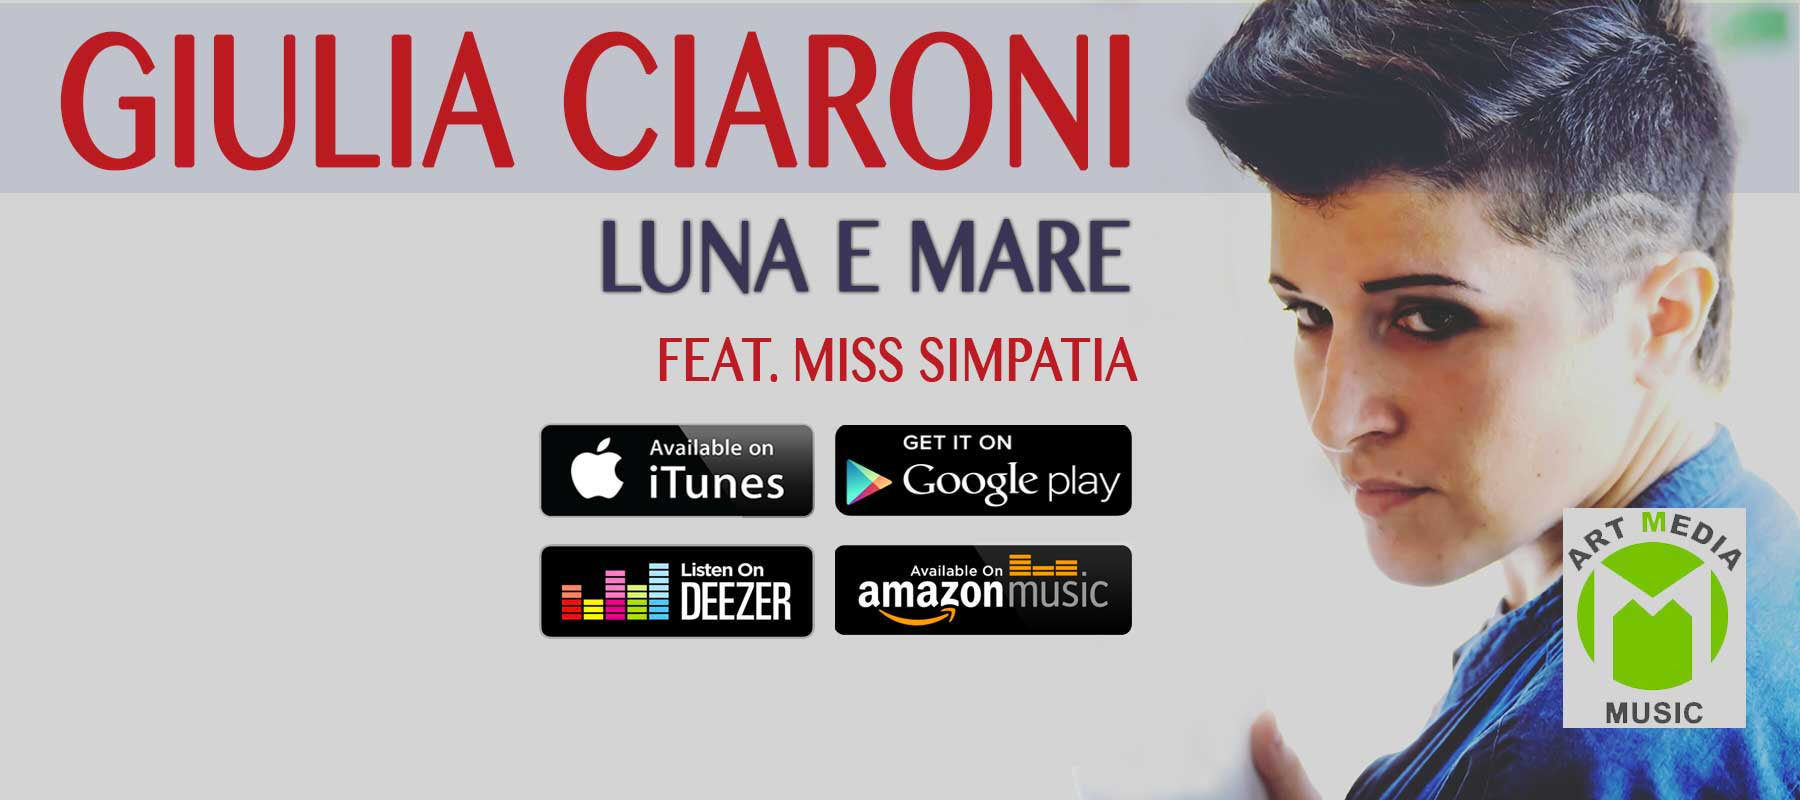 Cover-Giulia-Ciaroni-base